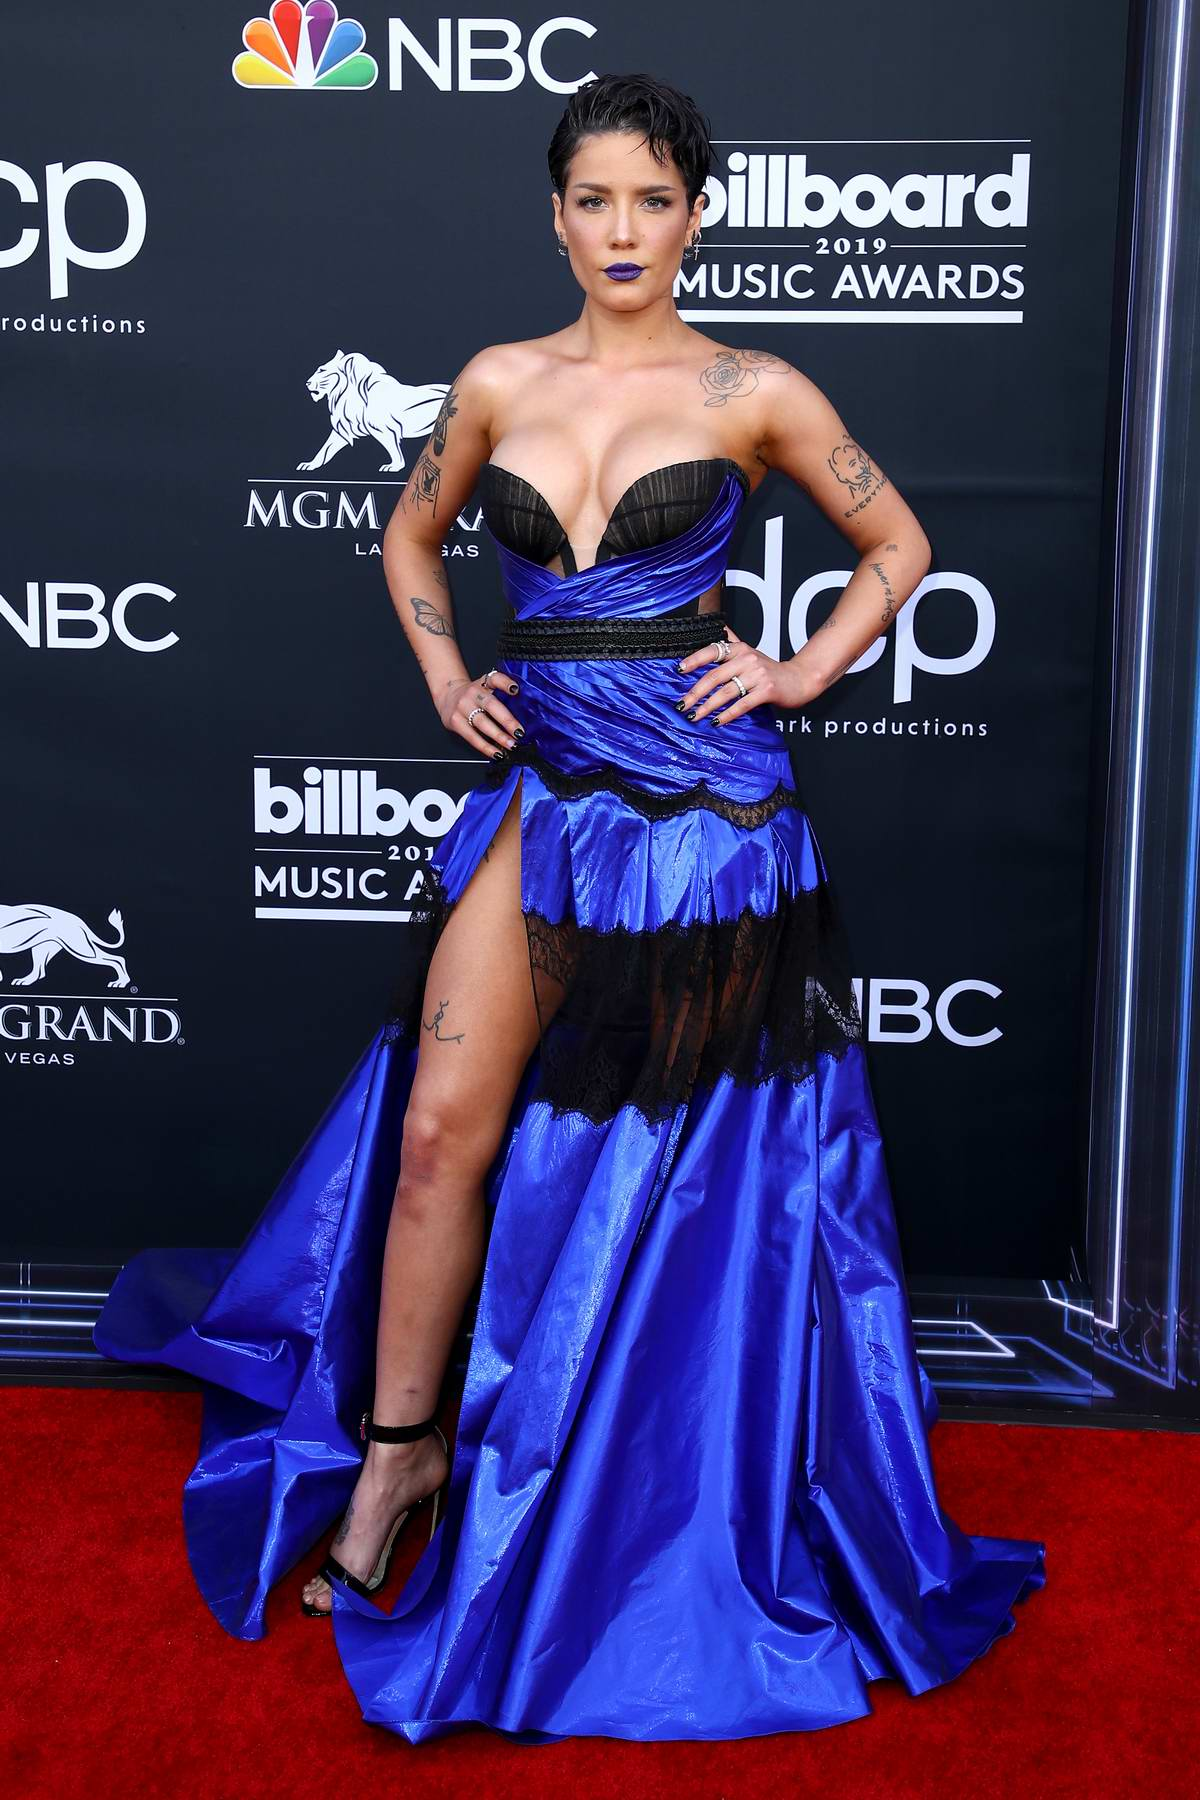 Halsey attends the 2019 Billboard Music Awards at MGM Grand Garden Arena in Las Vegas, Nevada